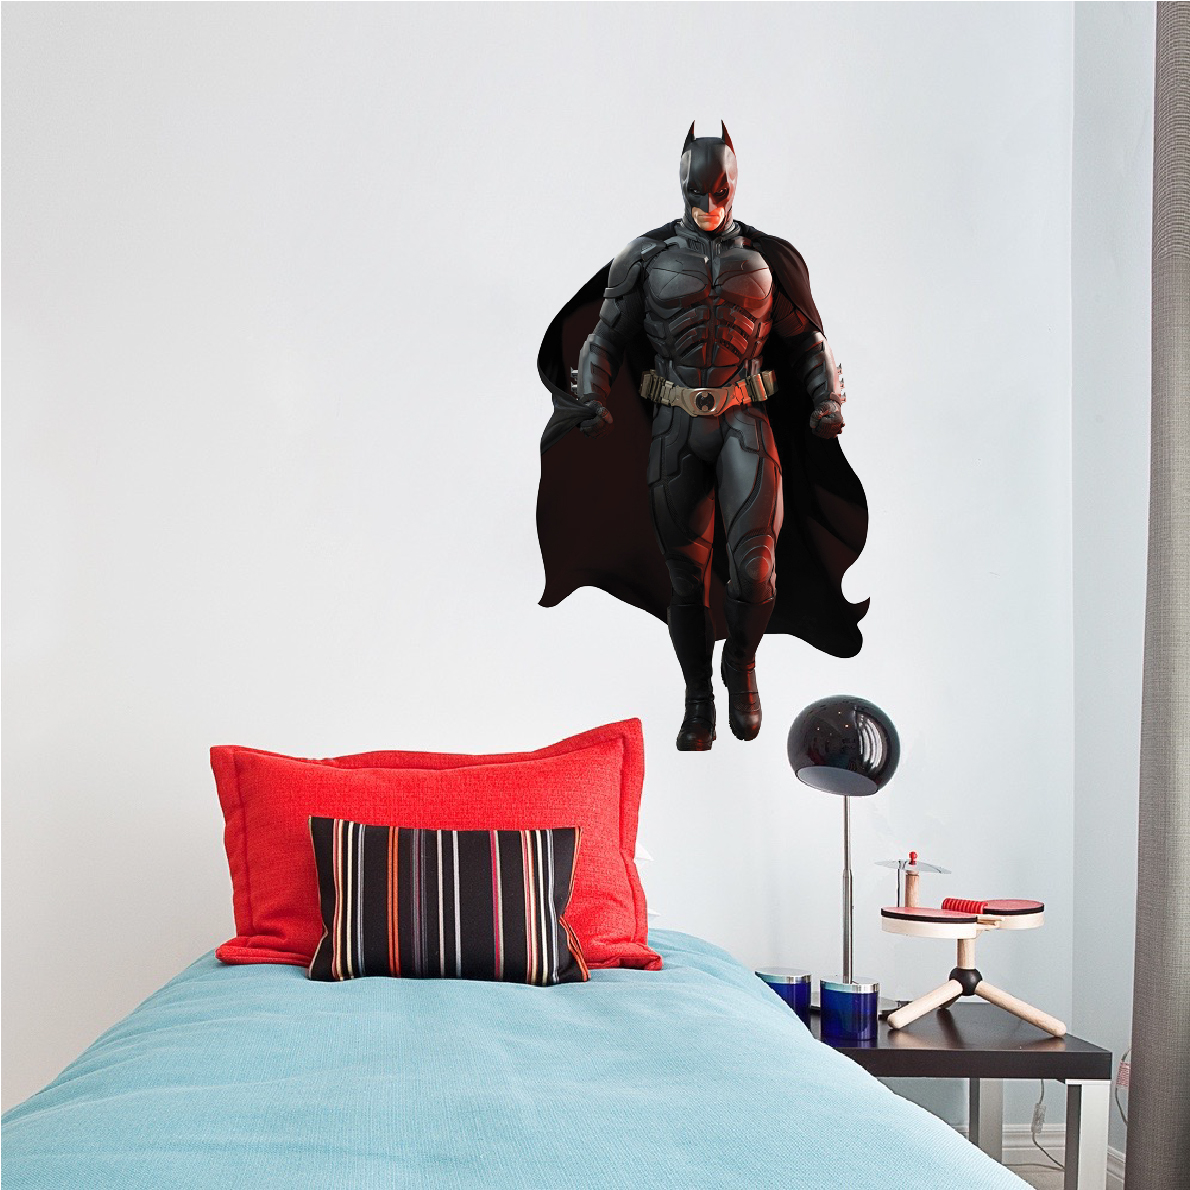 Batman Wall Decal Superhero Wall Design The Dark